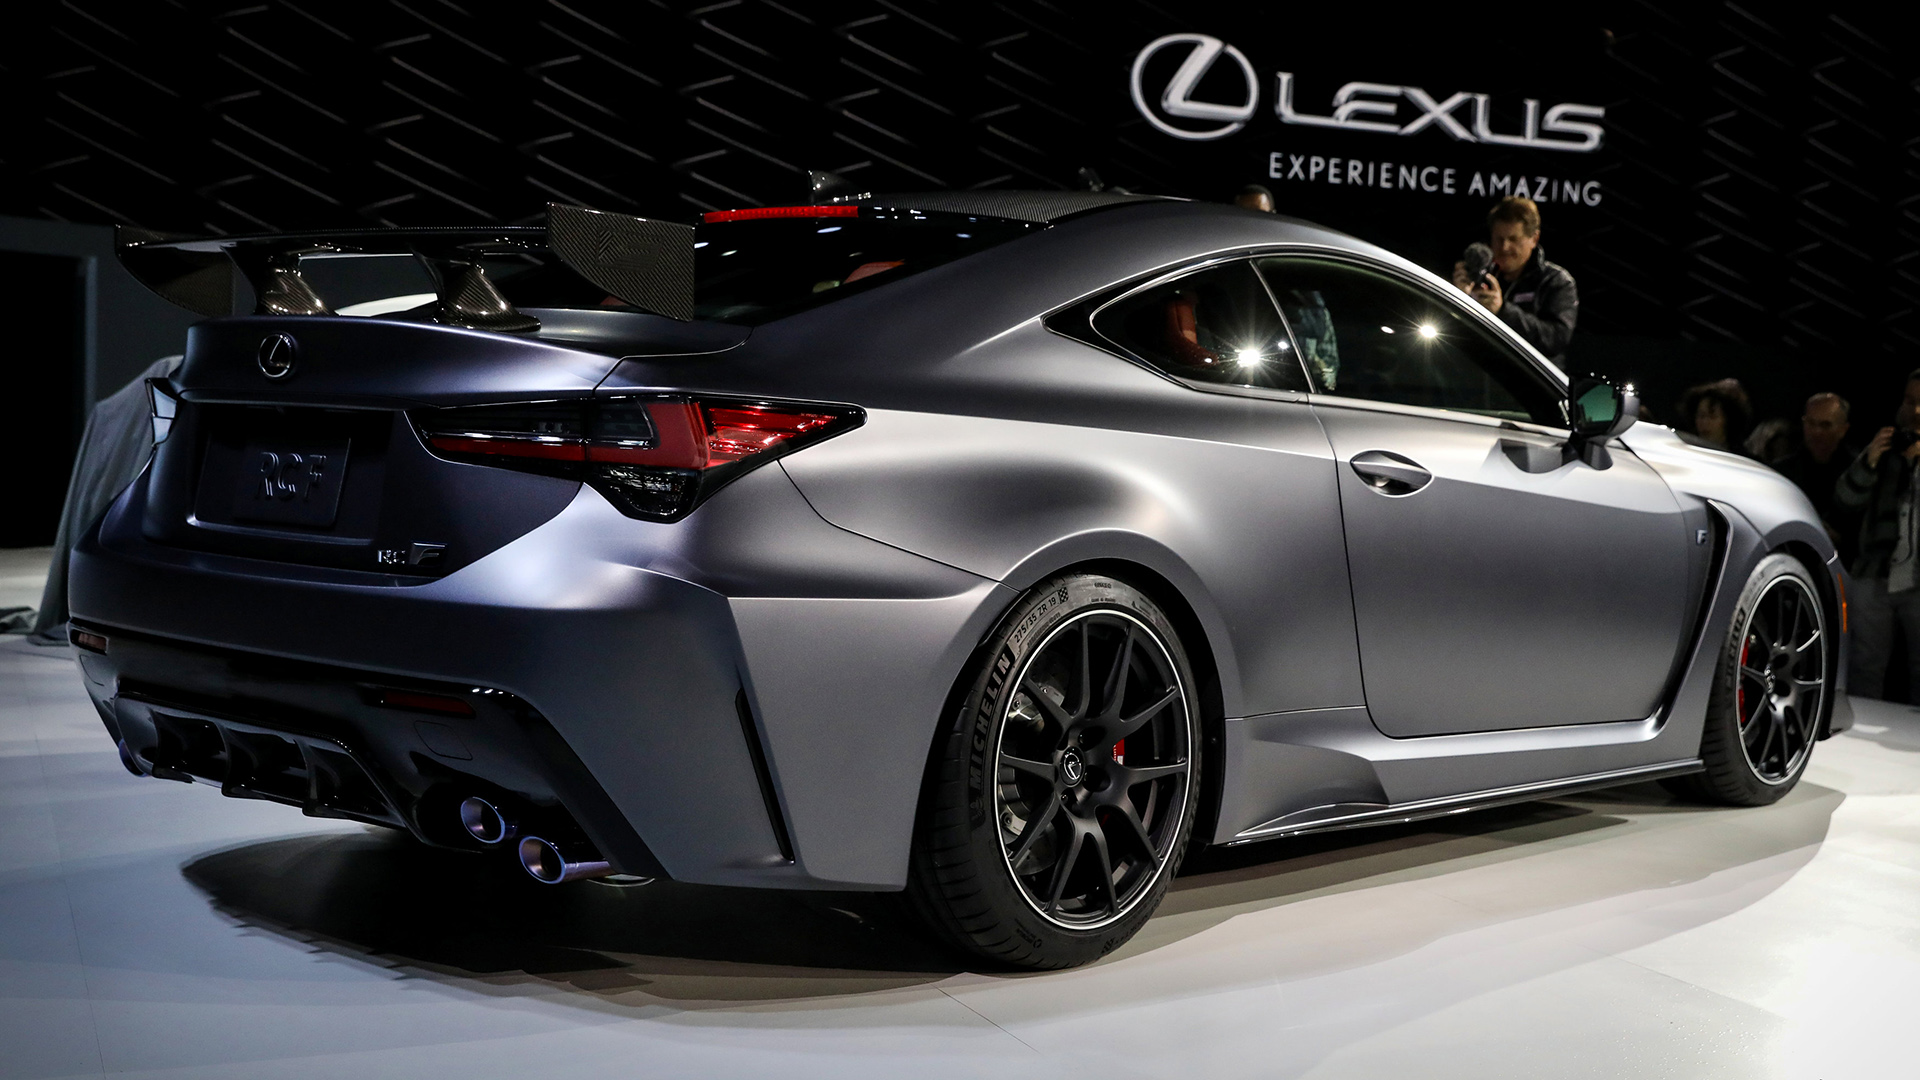 El Lexus 2020 RC F Track Edition se presenta durante un evento en el North American International Auto Show en Detroit, Michigan. (Reuters)